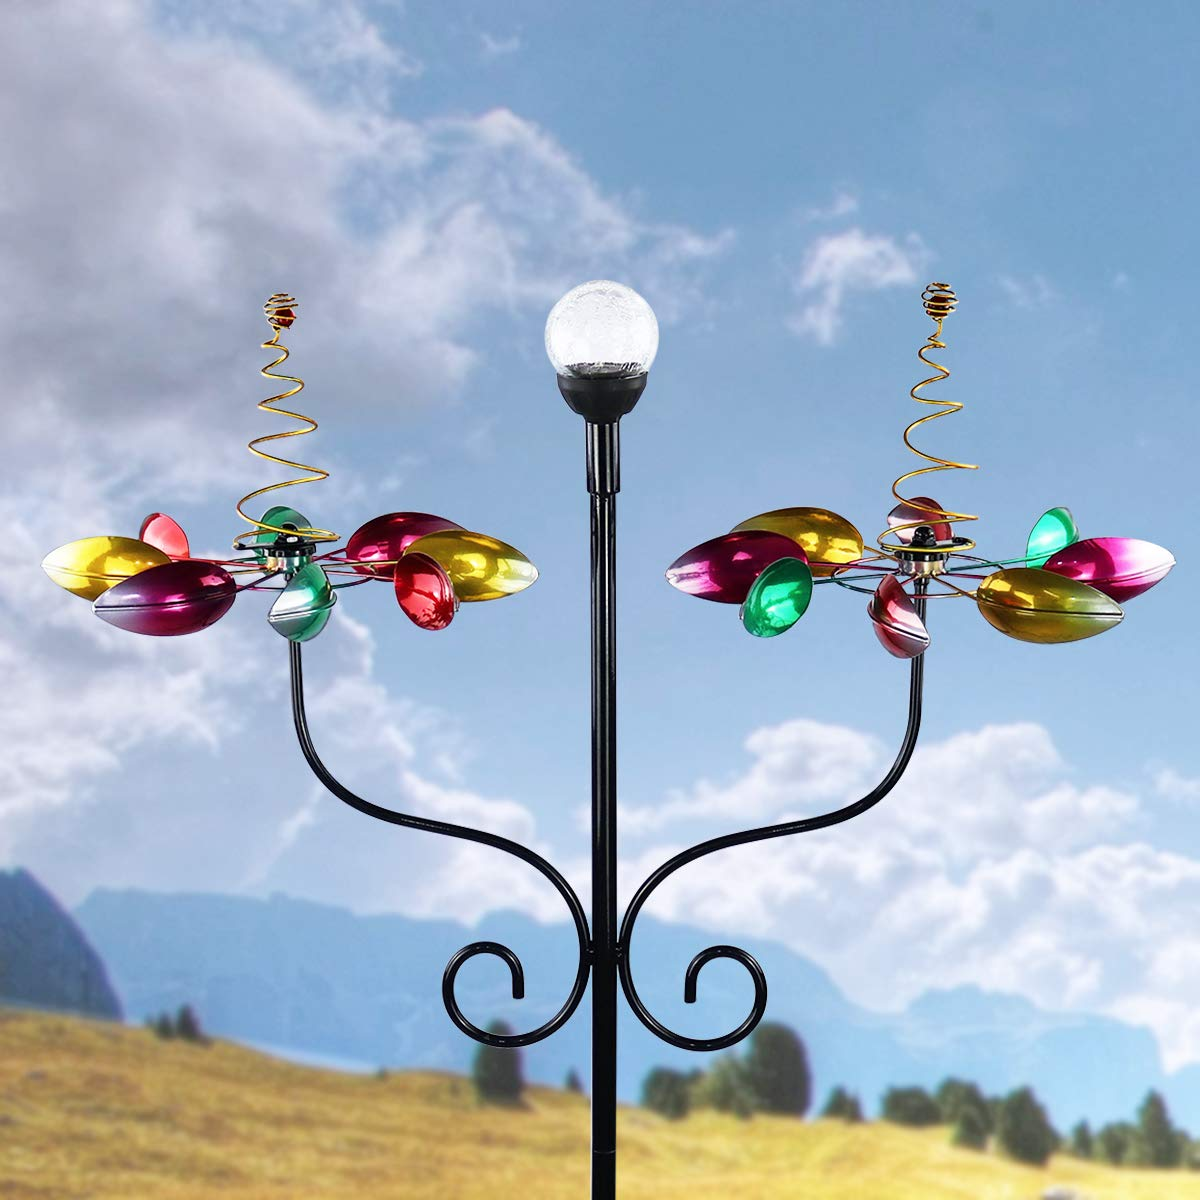 Solar Wind Spinner 3d Kinetic Wind Spinners Outdoor Metal Gardening Decorations With Multi Color Led Lighting By Solar Powered Glass Ball With Lawn Ornament Wind Mills Wind Sculptures Spinners Patio Lawn